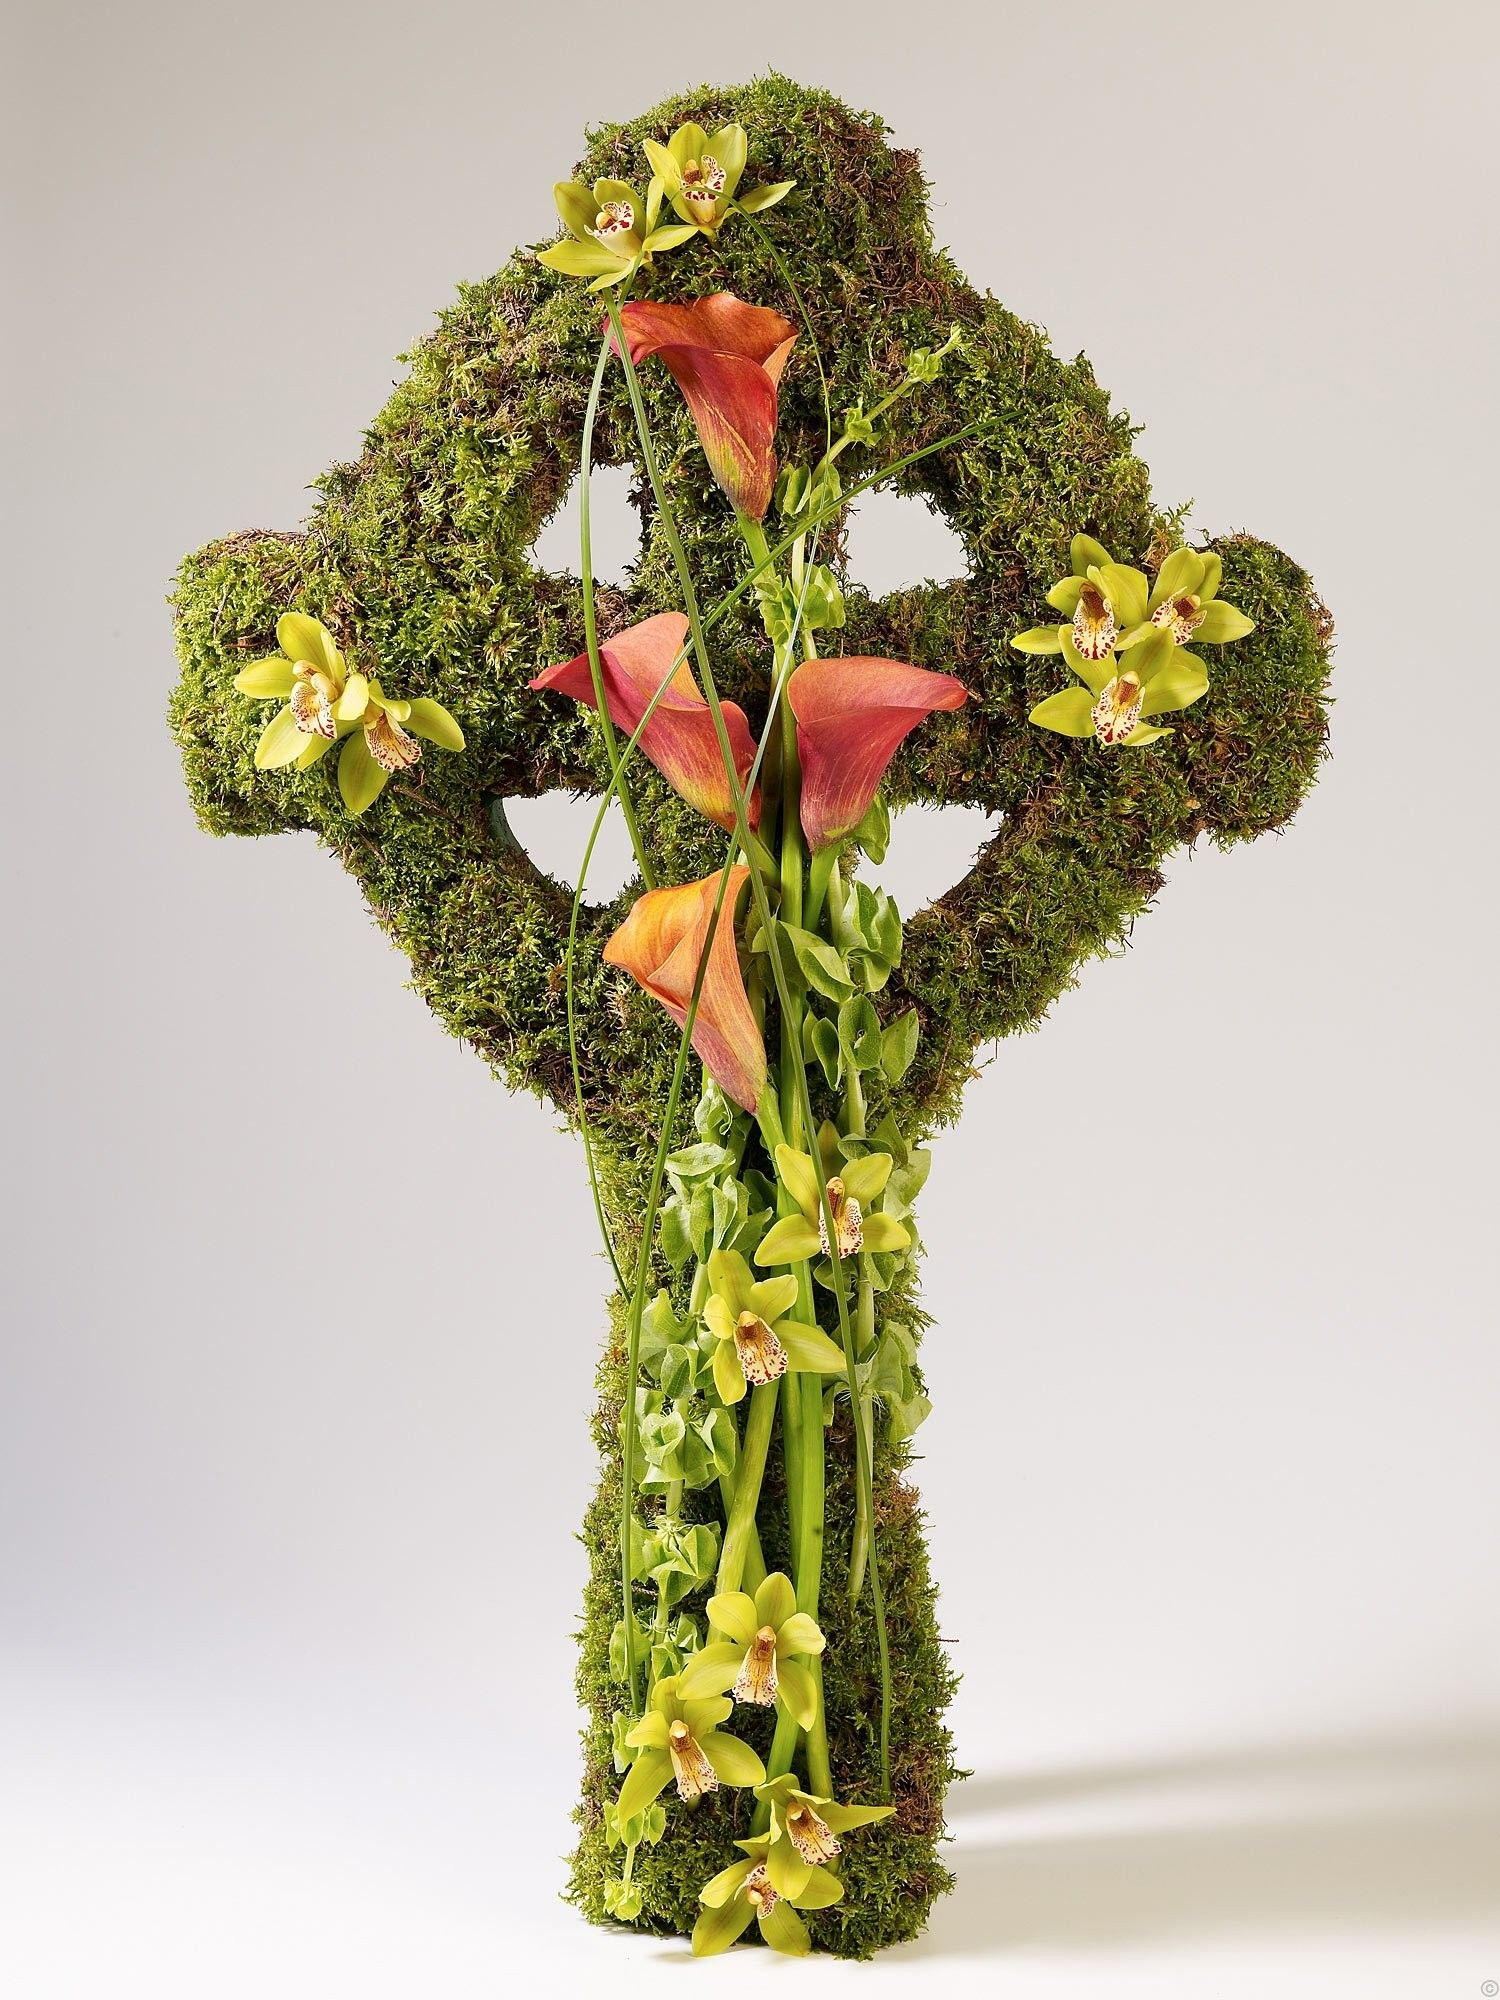 Striking celtic cross moss croos with delicate green mini striking celtic cross moss croos with delicate green mini cymbidium orchids and elegant mango coloured calla lilies designed to be positioned flat izmirmasajfo